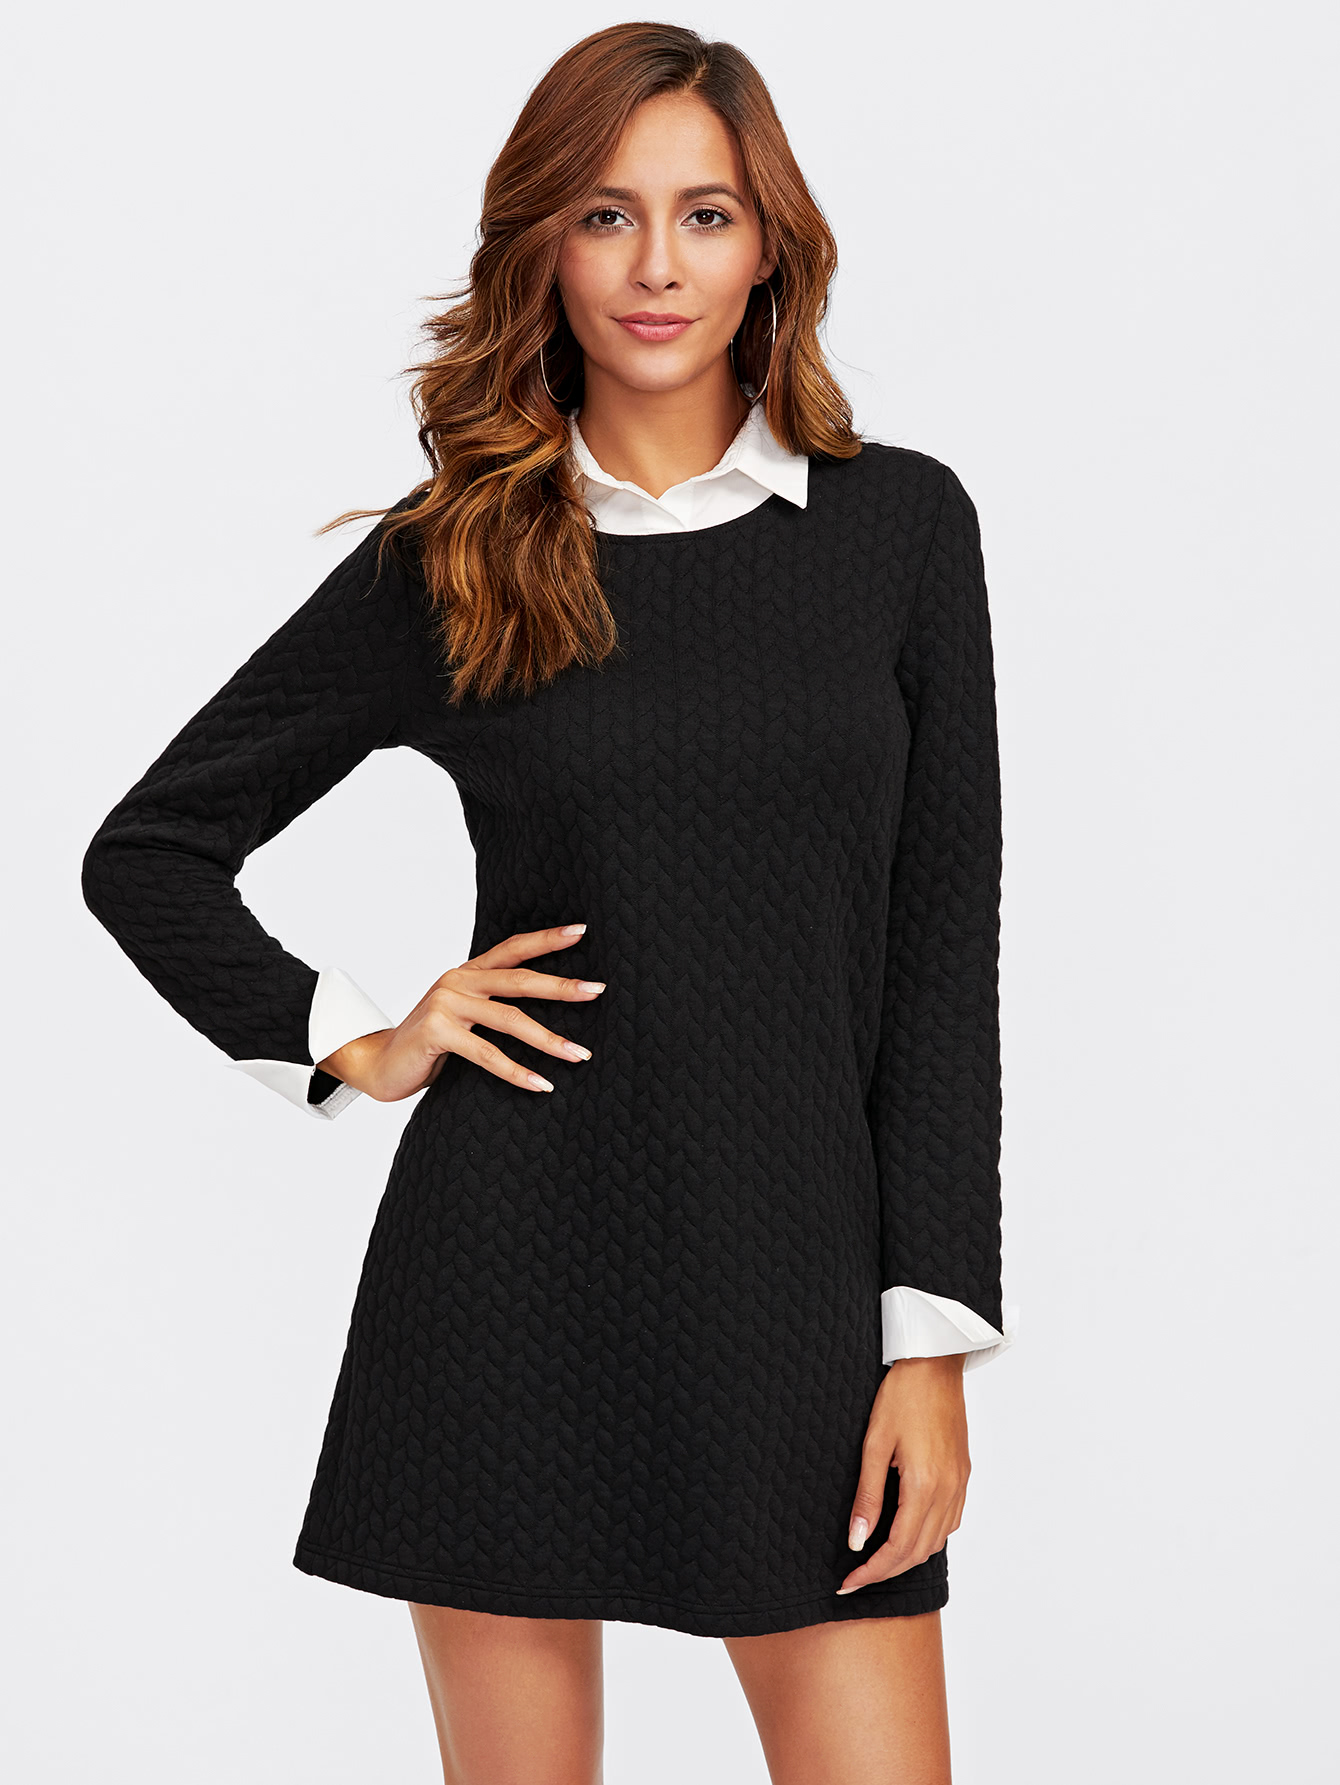 Contrast Collar And Cuff Textured 2 In 1 Dress lace collar and cuff tunic dress